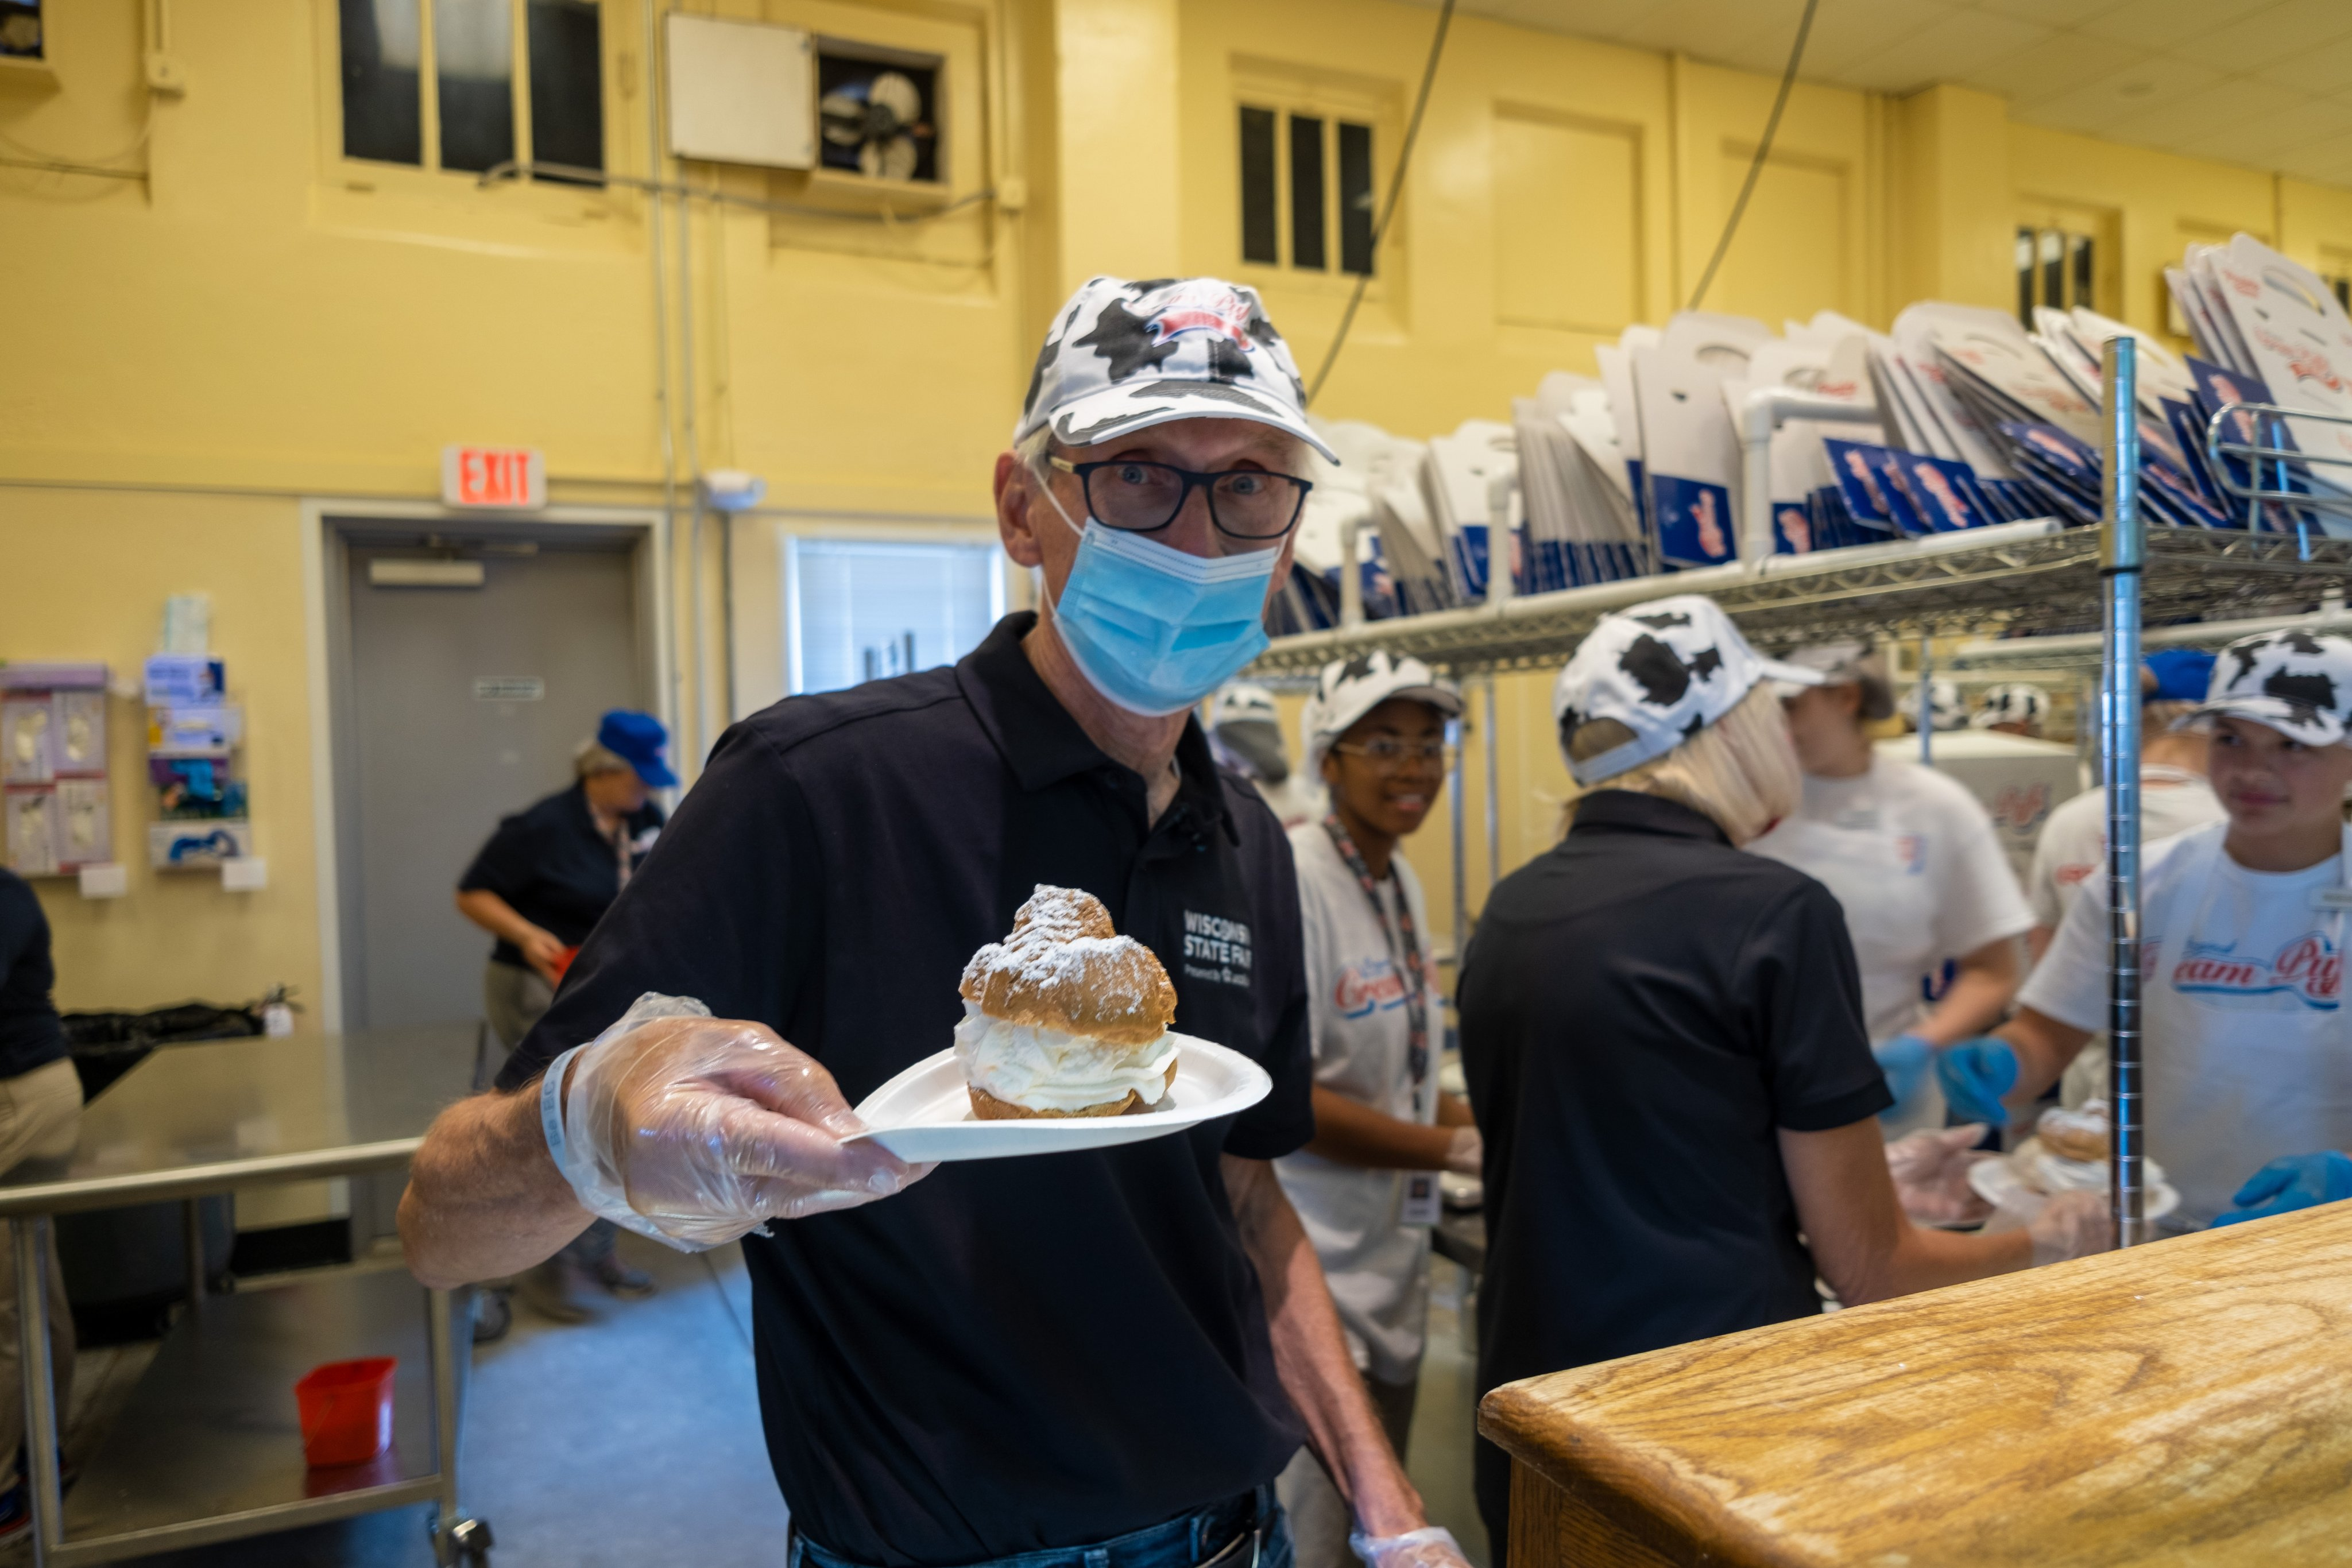 Gov. Evers serves up a cream puff at the Wisconsin State Fair. More than 250 fairgoers have earned a free cream puff by getting vaccinated at the fair's vaccine clinic.